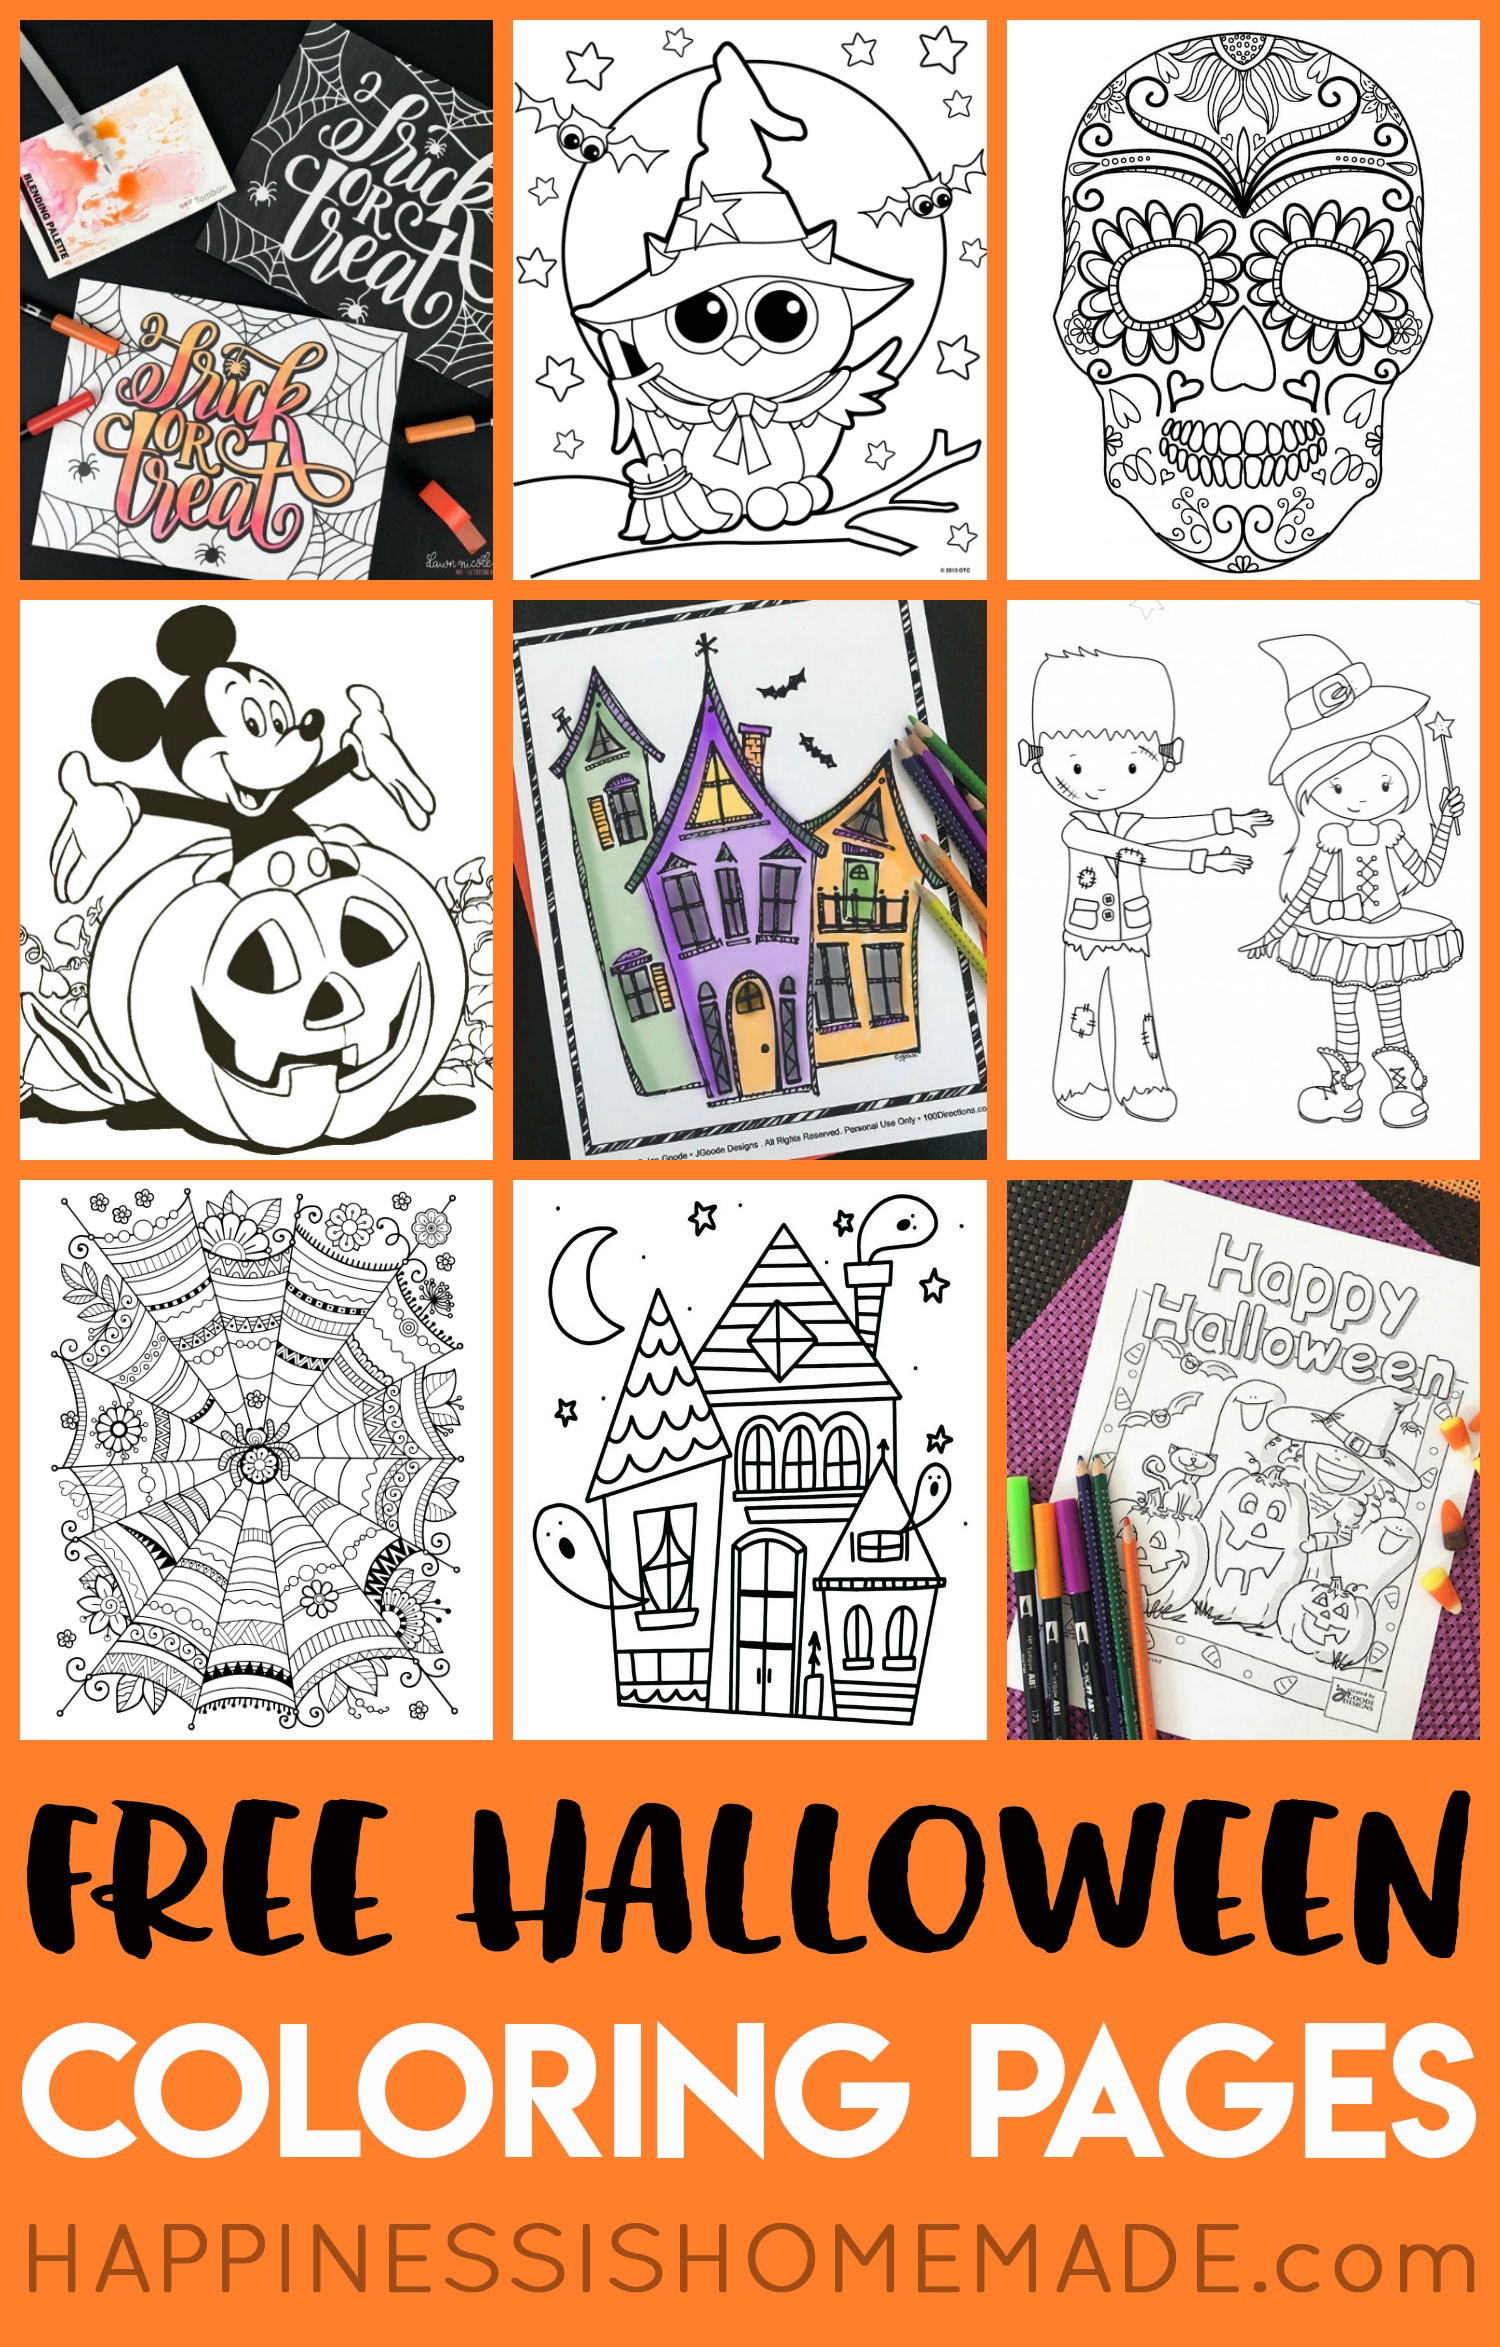 Free Halloween Coloring Pages For Adults & Kids - Happiness Is Homemade - Printable Halloween Cards To Color For Free